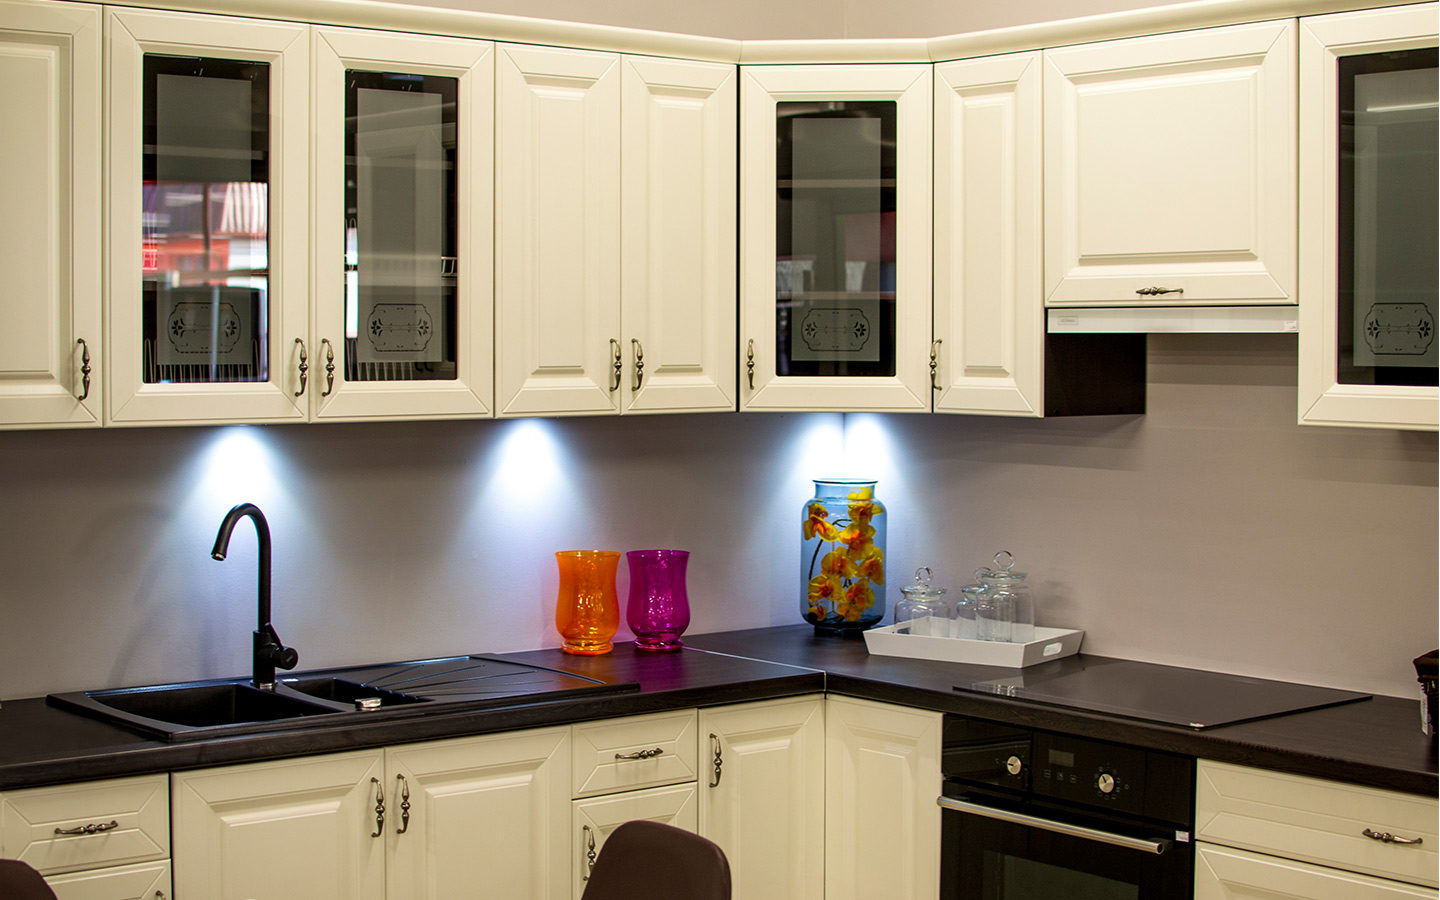 Picture of a kitchen cabinet in the house